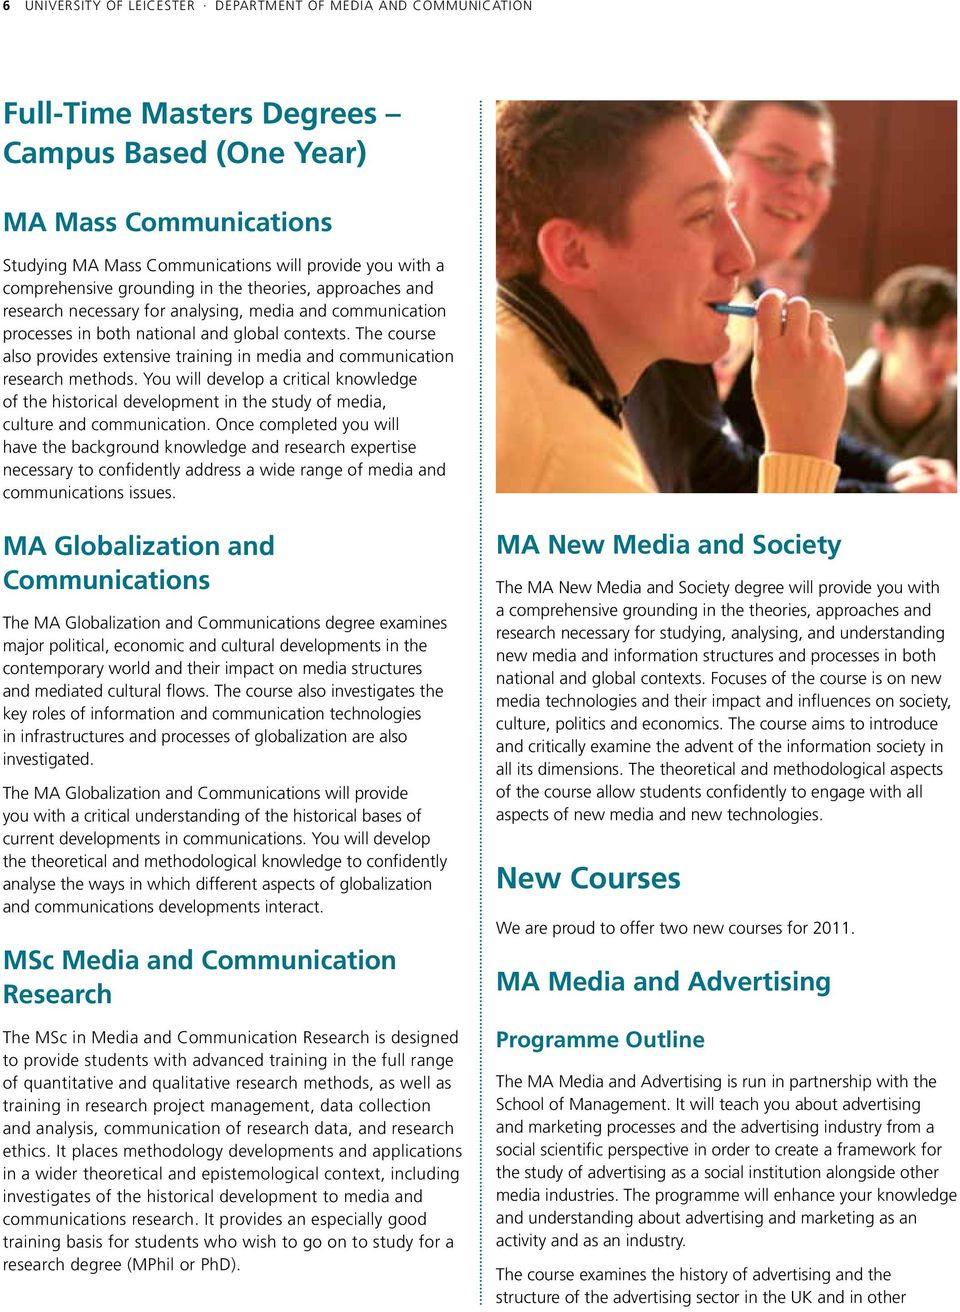 The course also provides extensive training in media and communication research methods.